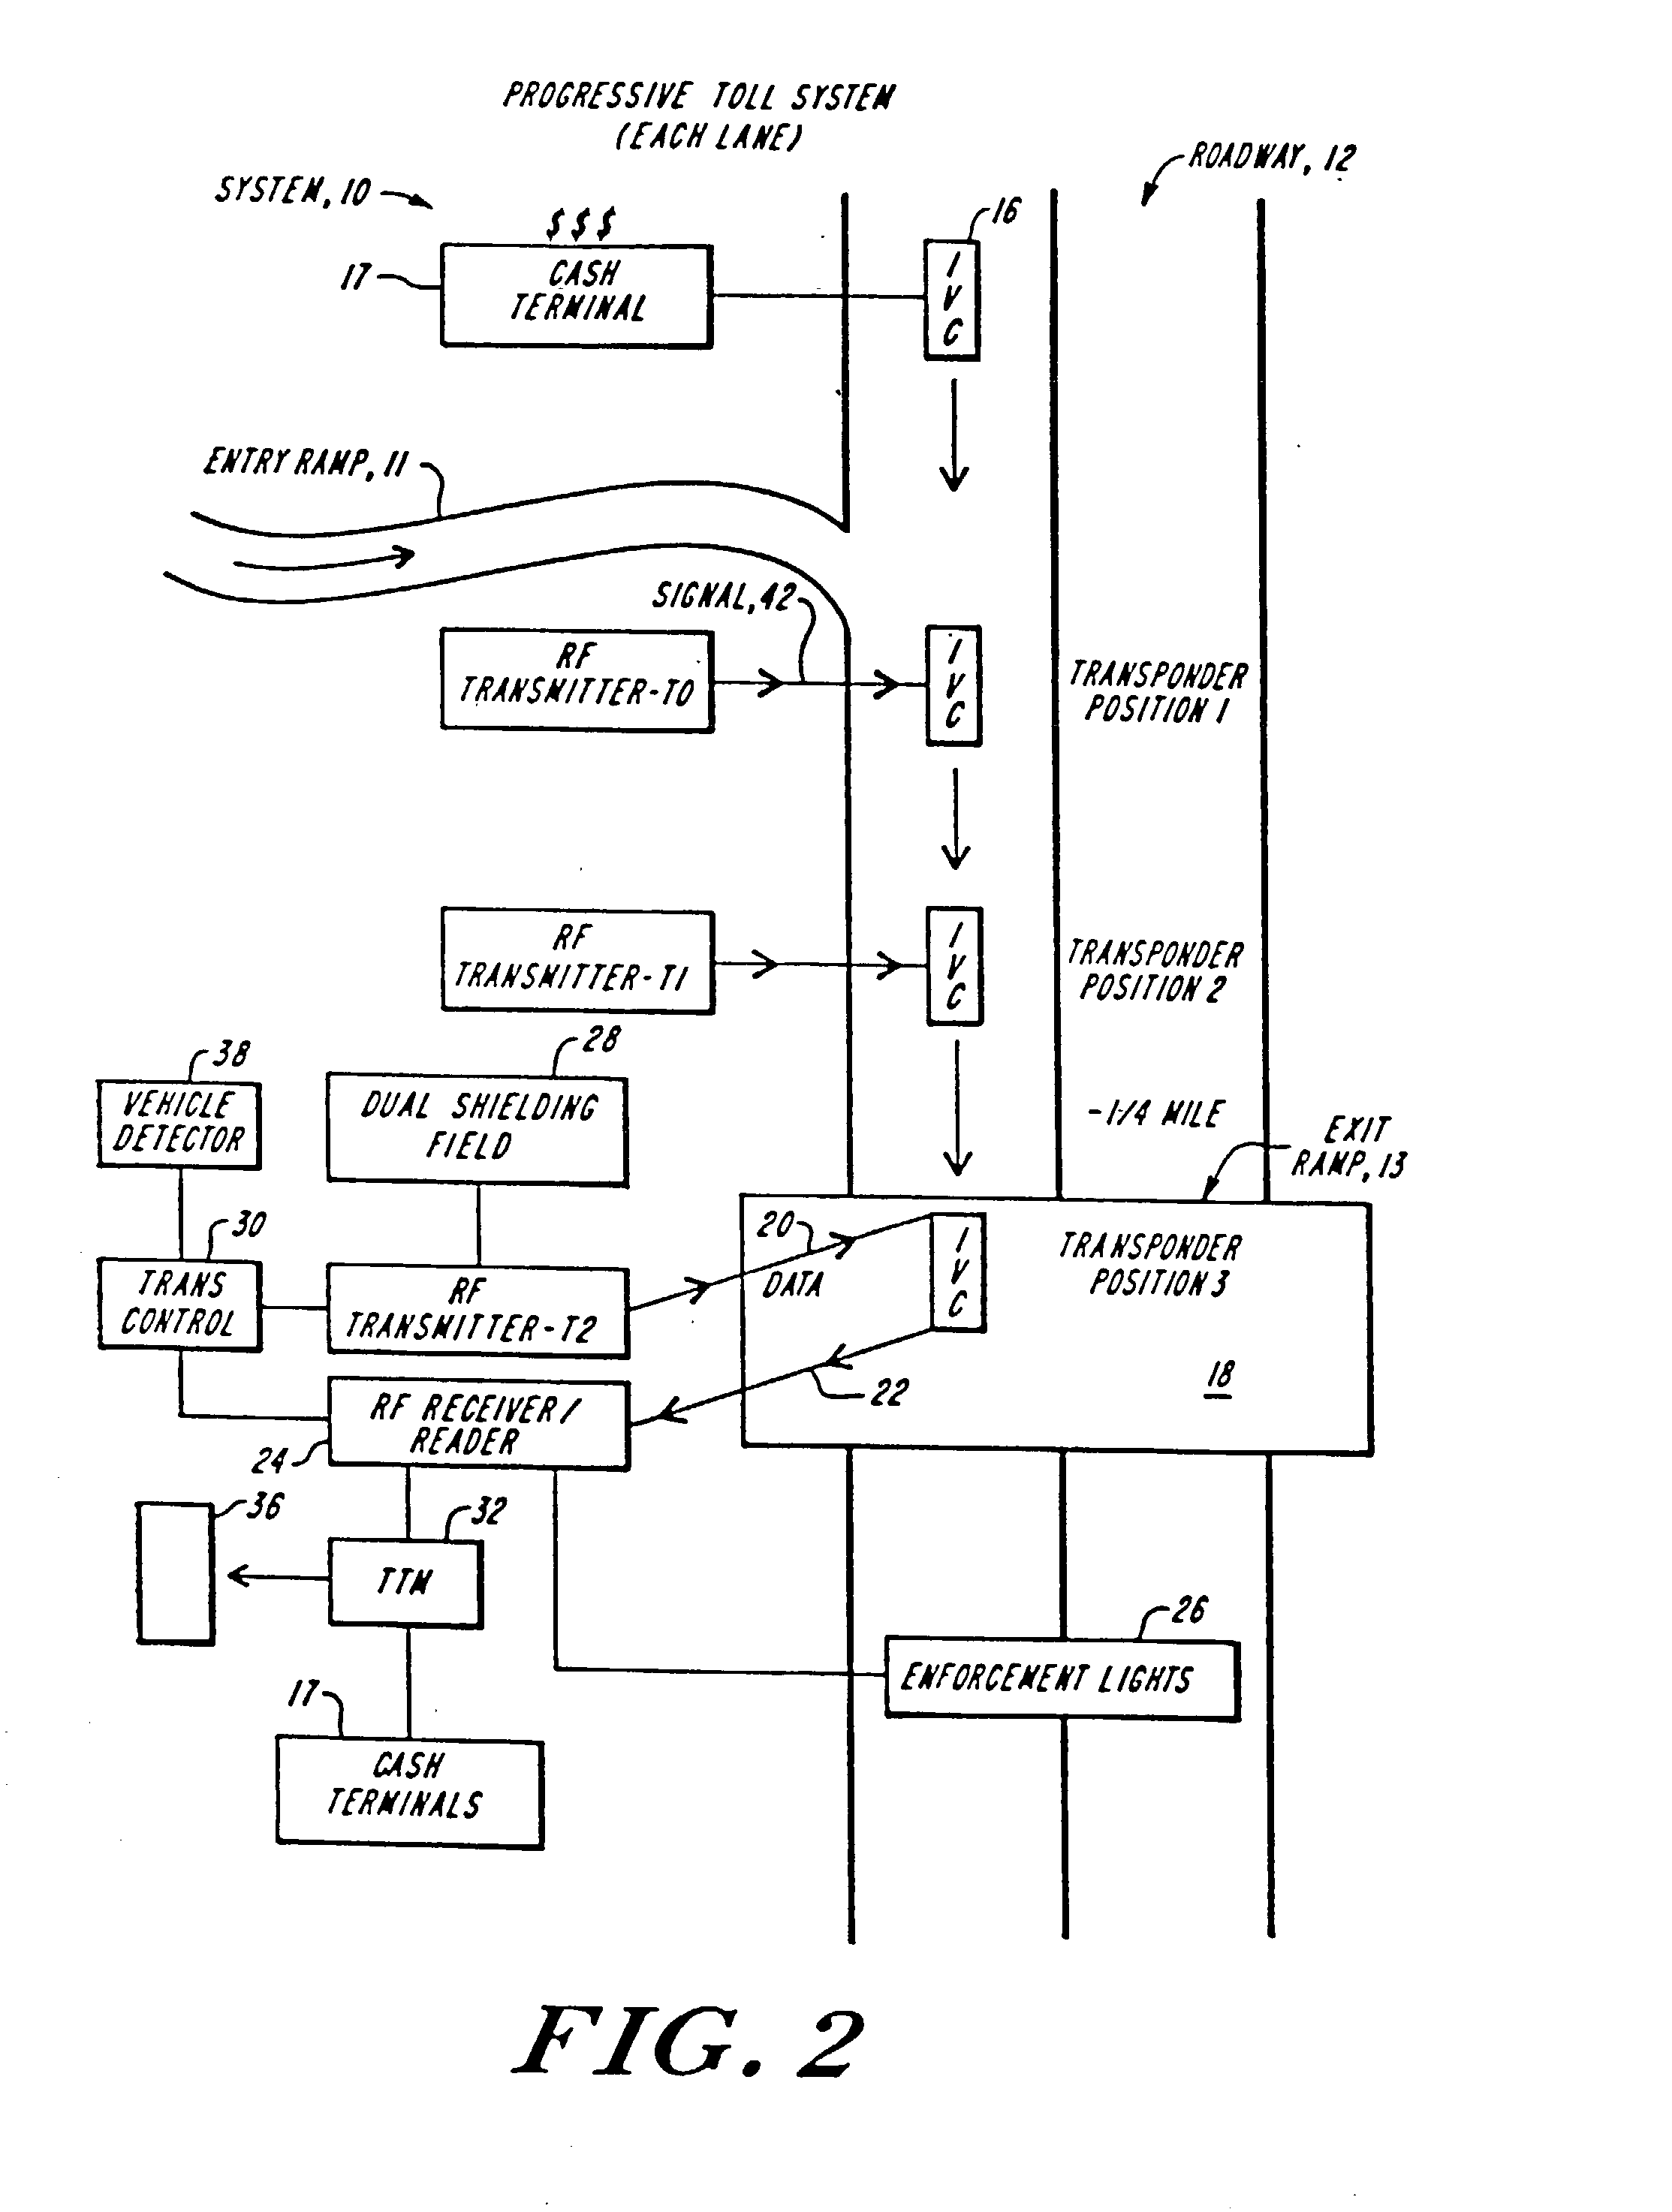 Audible Turnsignal Indicator Circuit Diagram Tradeoficcom Wiring All Points 421265 On Off Breaker Switch 30a 250v Patent Us20030067396 Electronic Vehicle Toll Collection System And Rh Google Ch